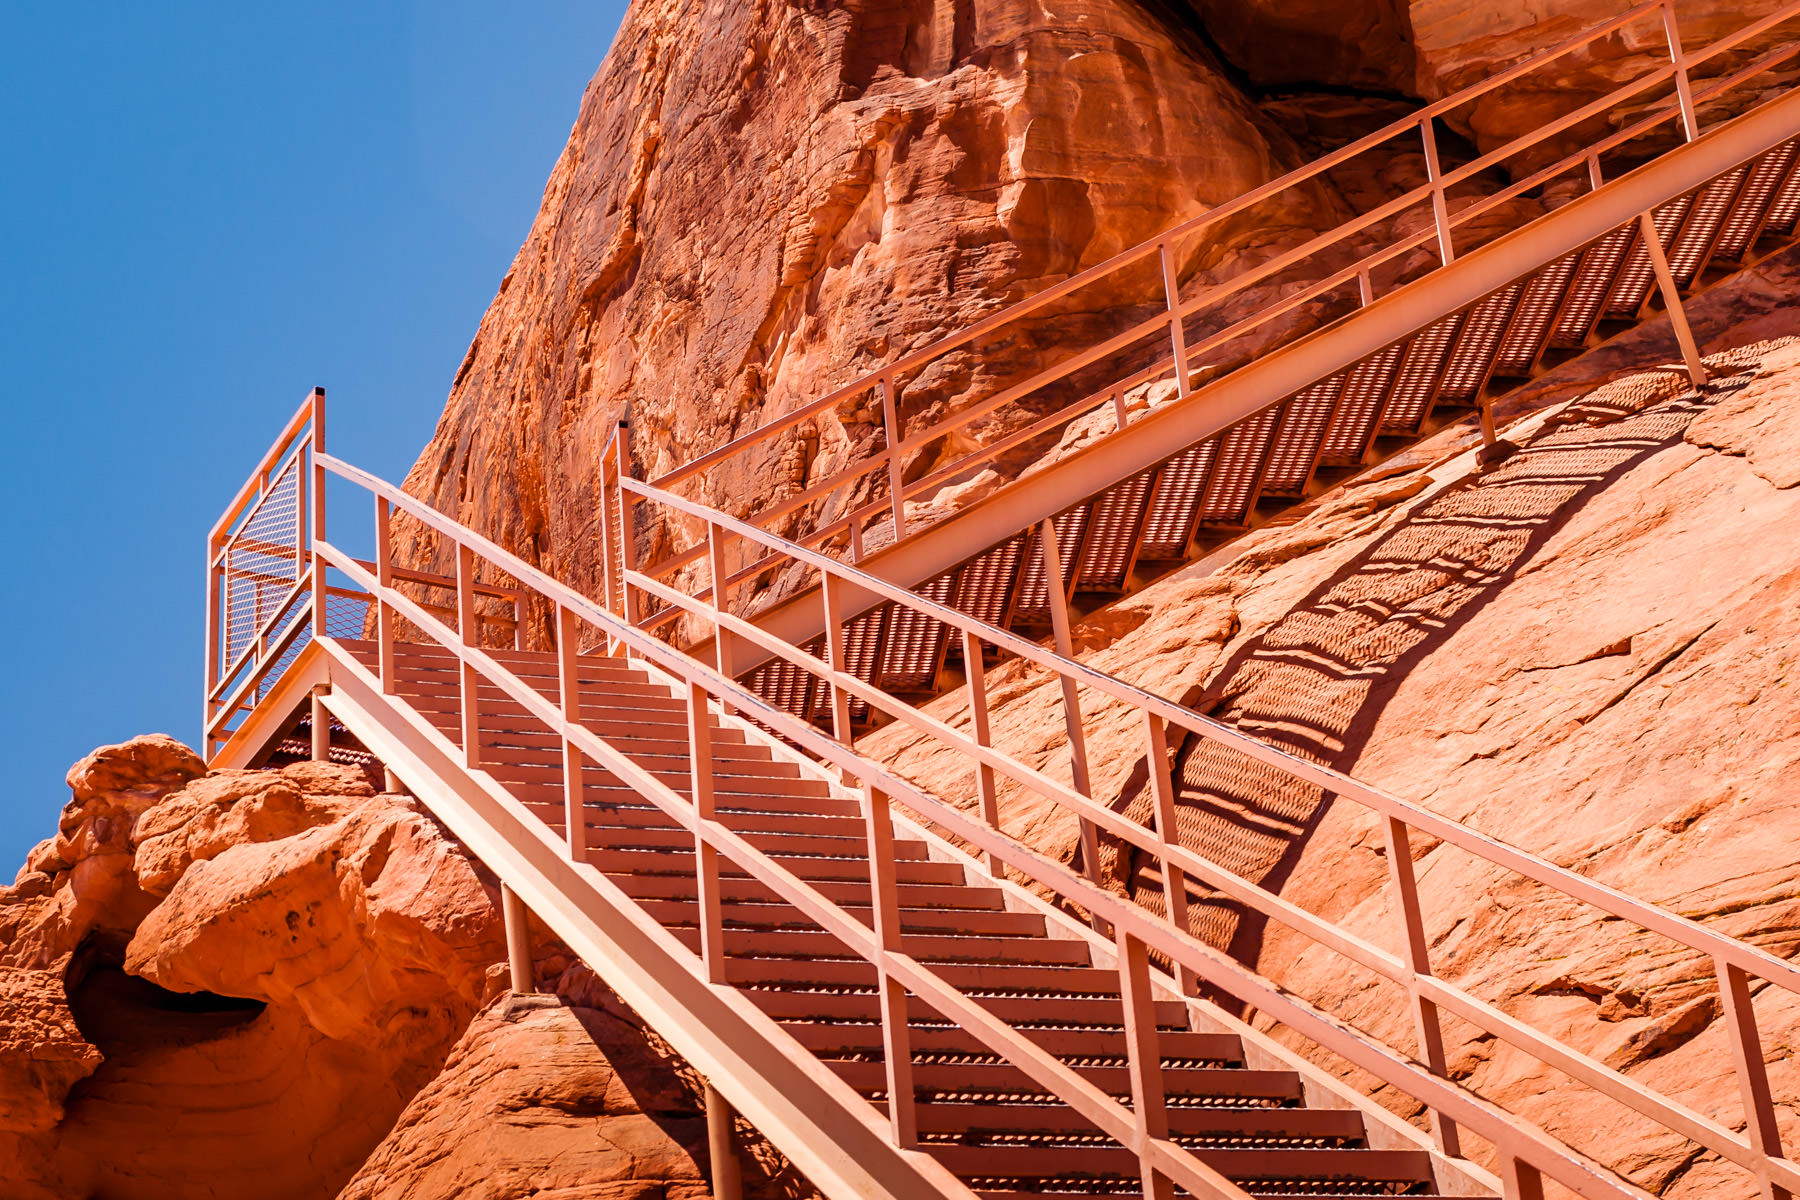 Stairs leading up the face of Atlatl Rock, where one can view ancient petroglyphs at Valley of Fire, Nevada.